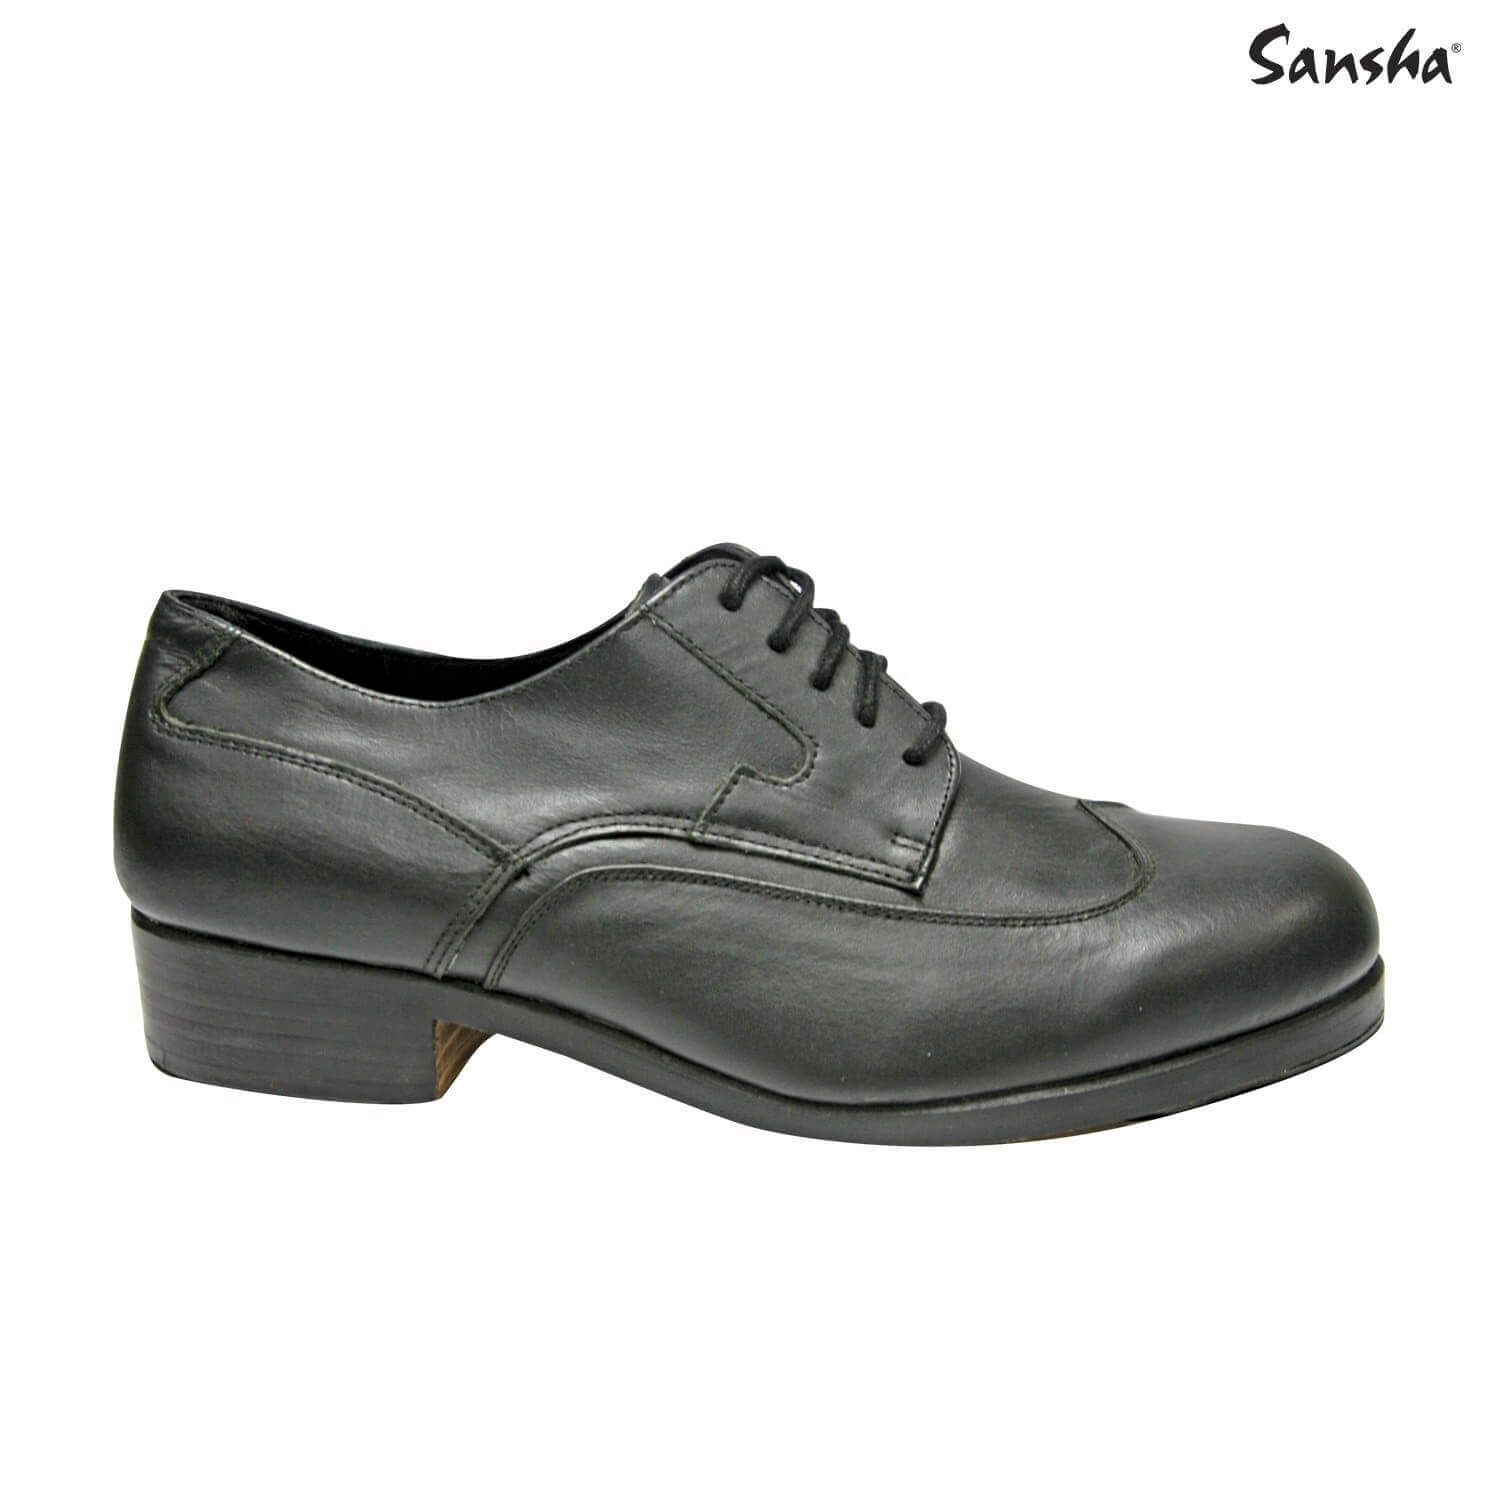 Sansha CM92L Men's Classic Character shoes